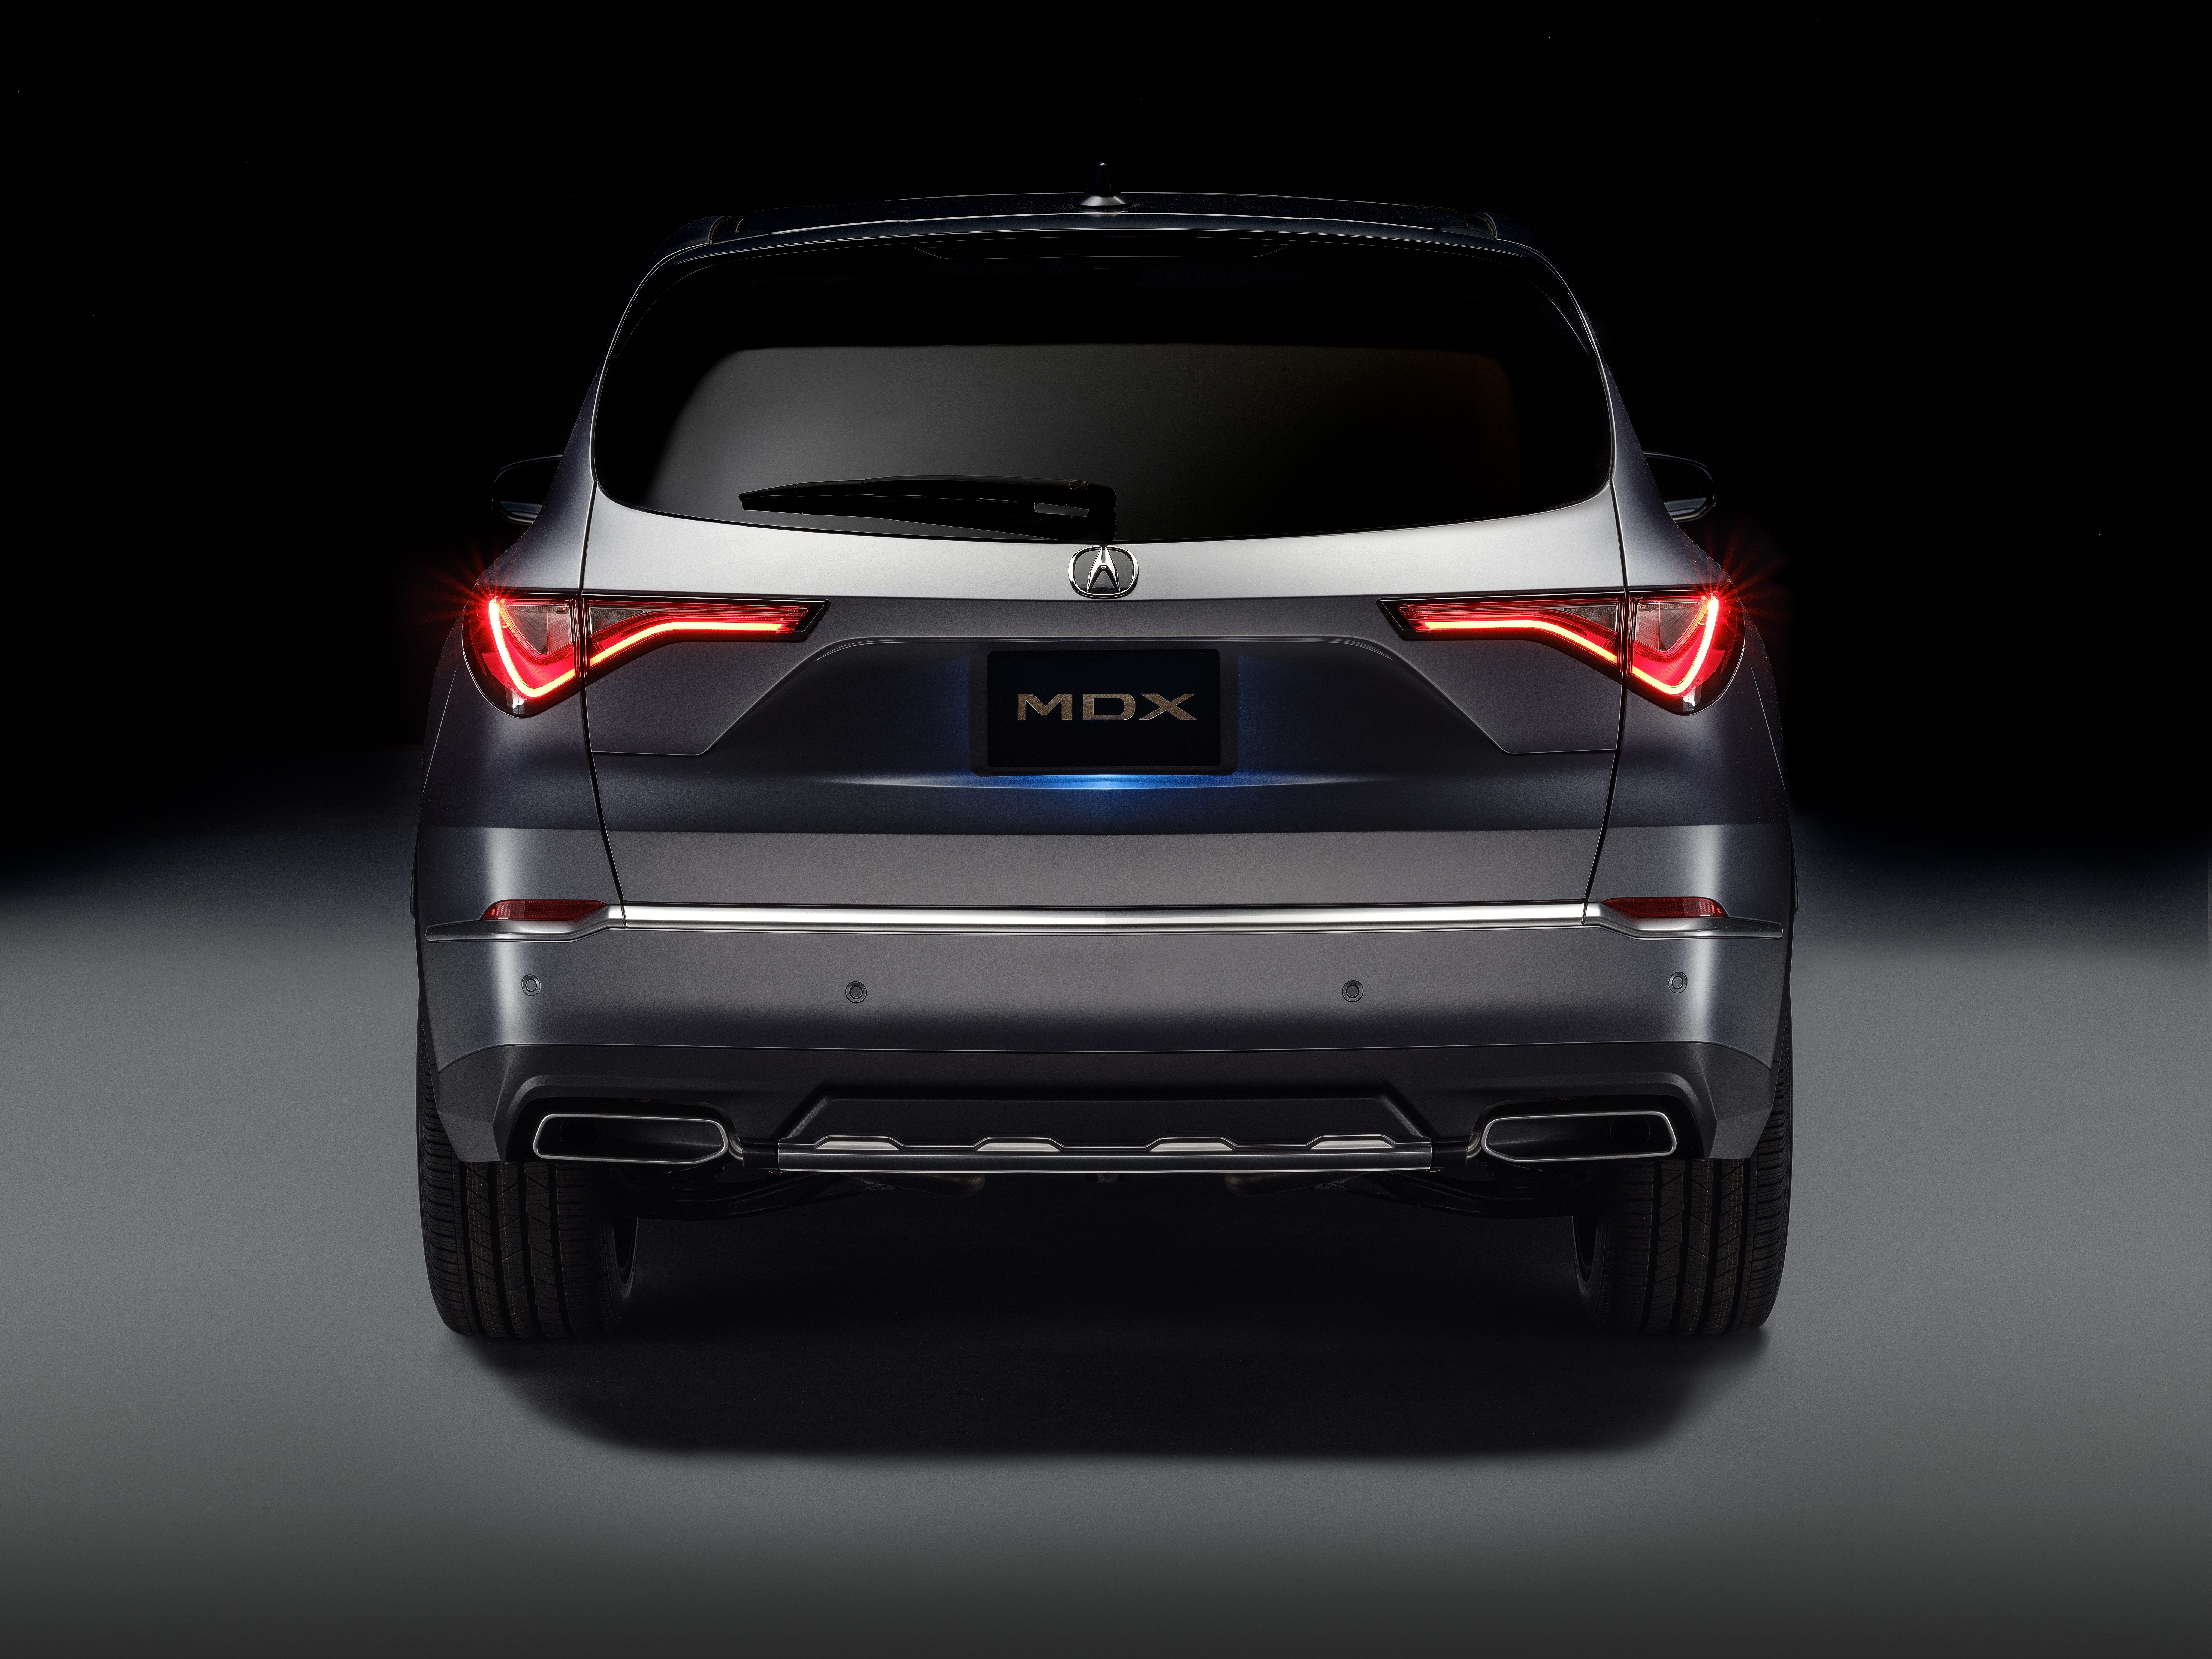 The 2022 Acura Mdx Prototype In Pictures